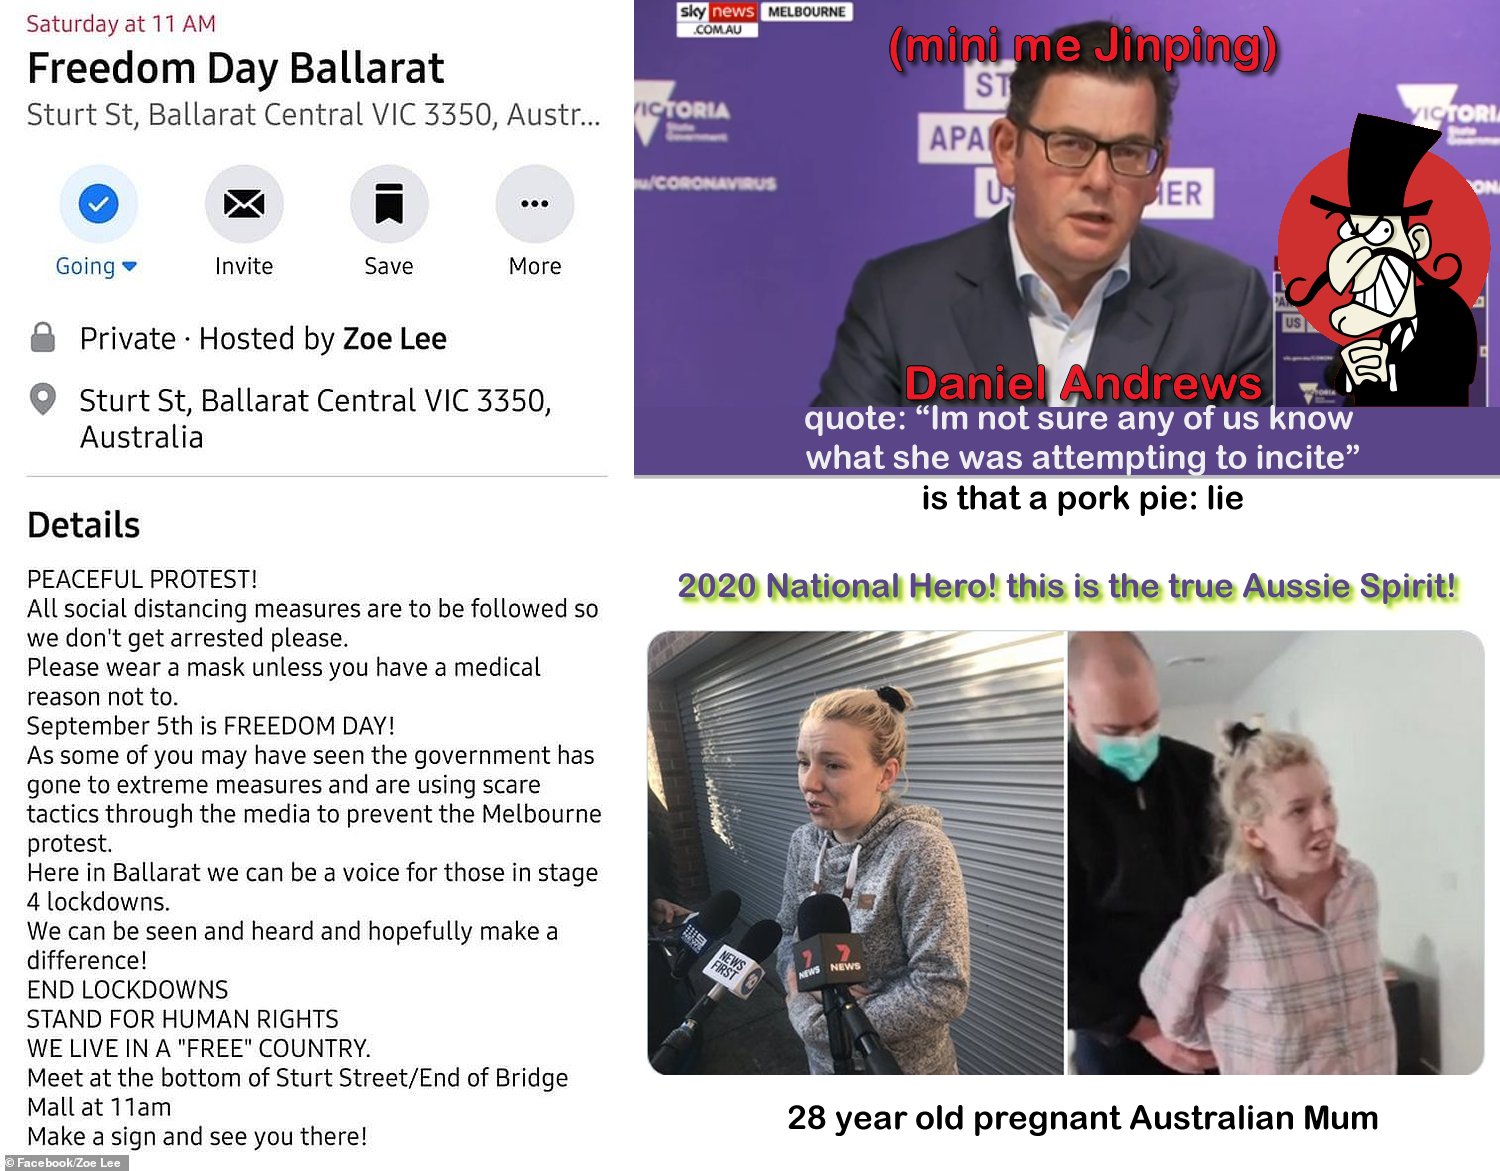 DICTATOR (mini me Jinping) DANIEL ANDREWS VICTORIAN GOVERNMENT AT ITS FINEST CCP HOUR